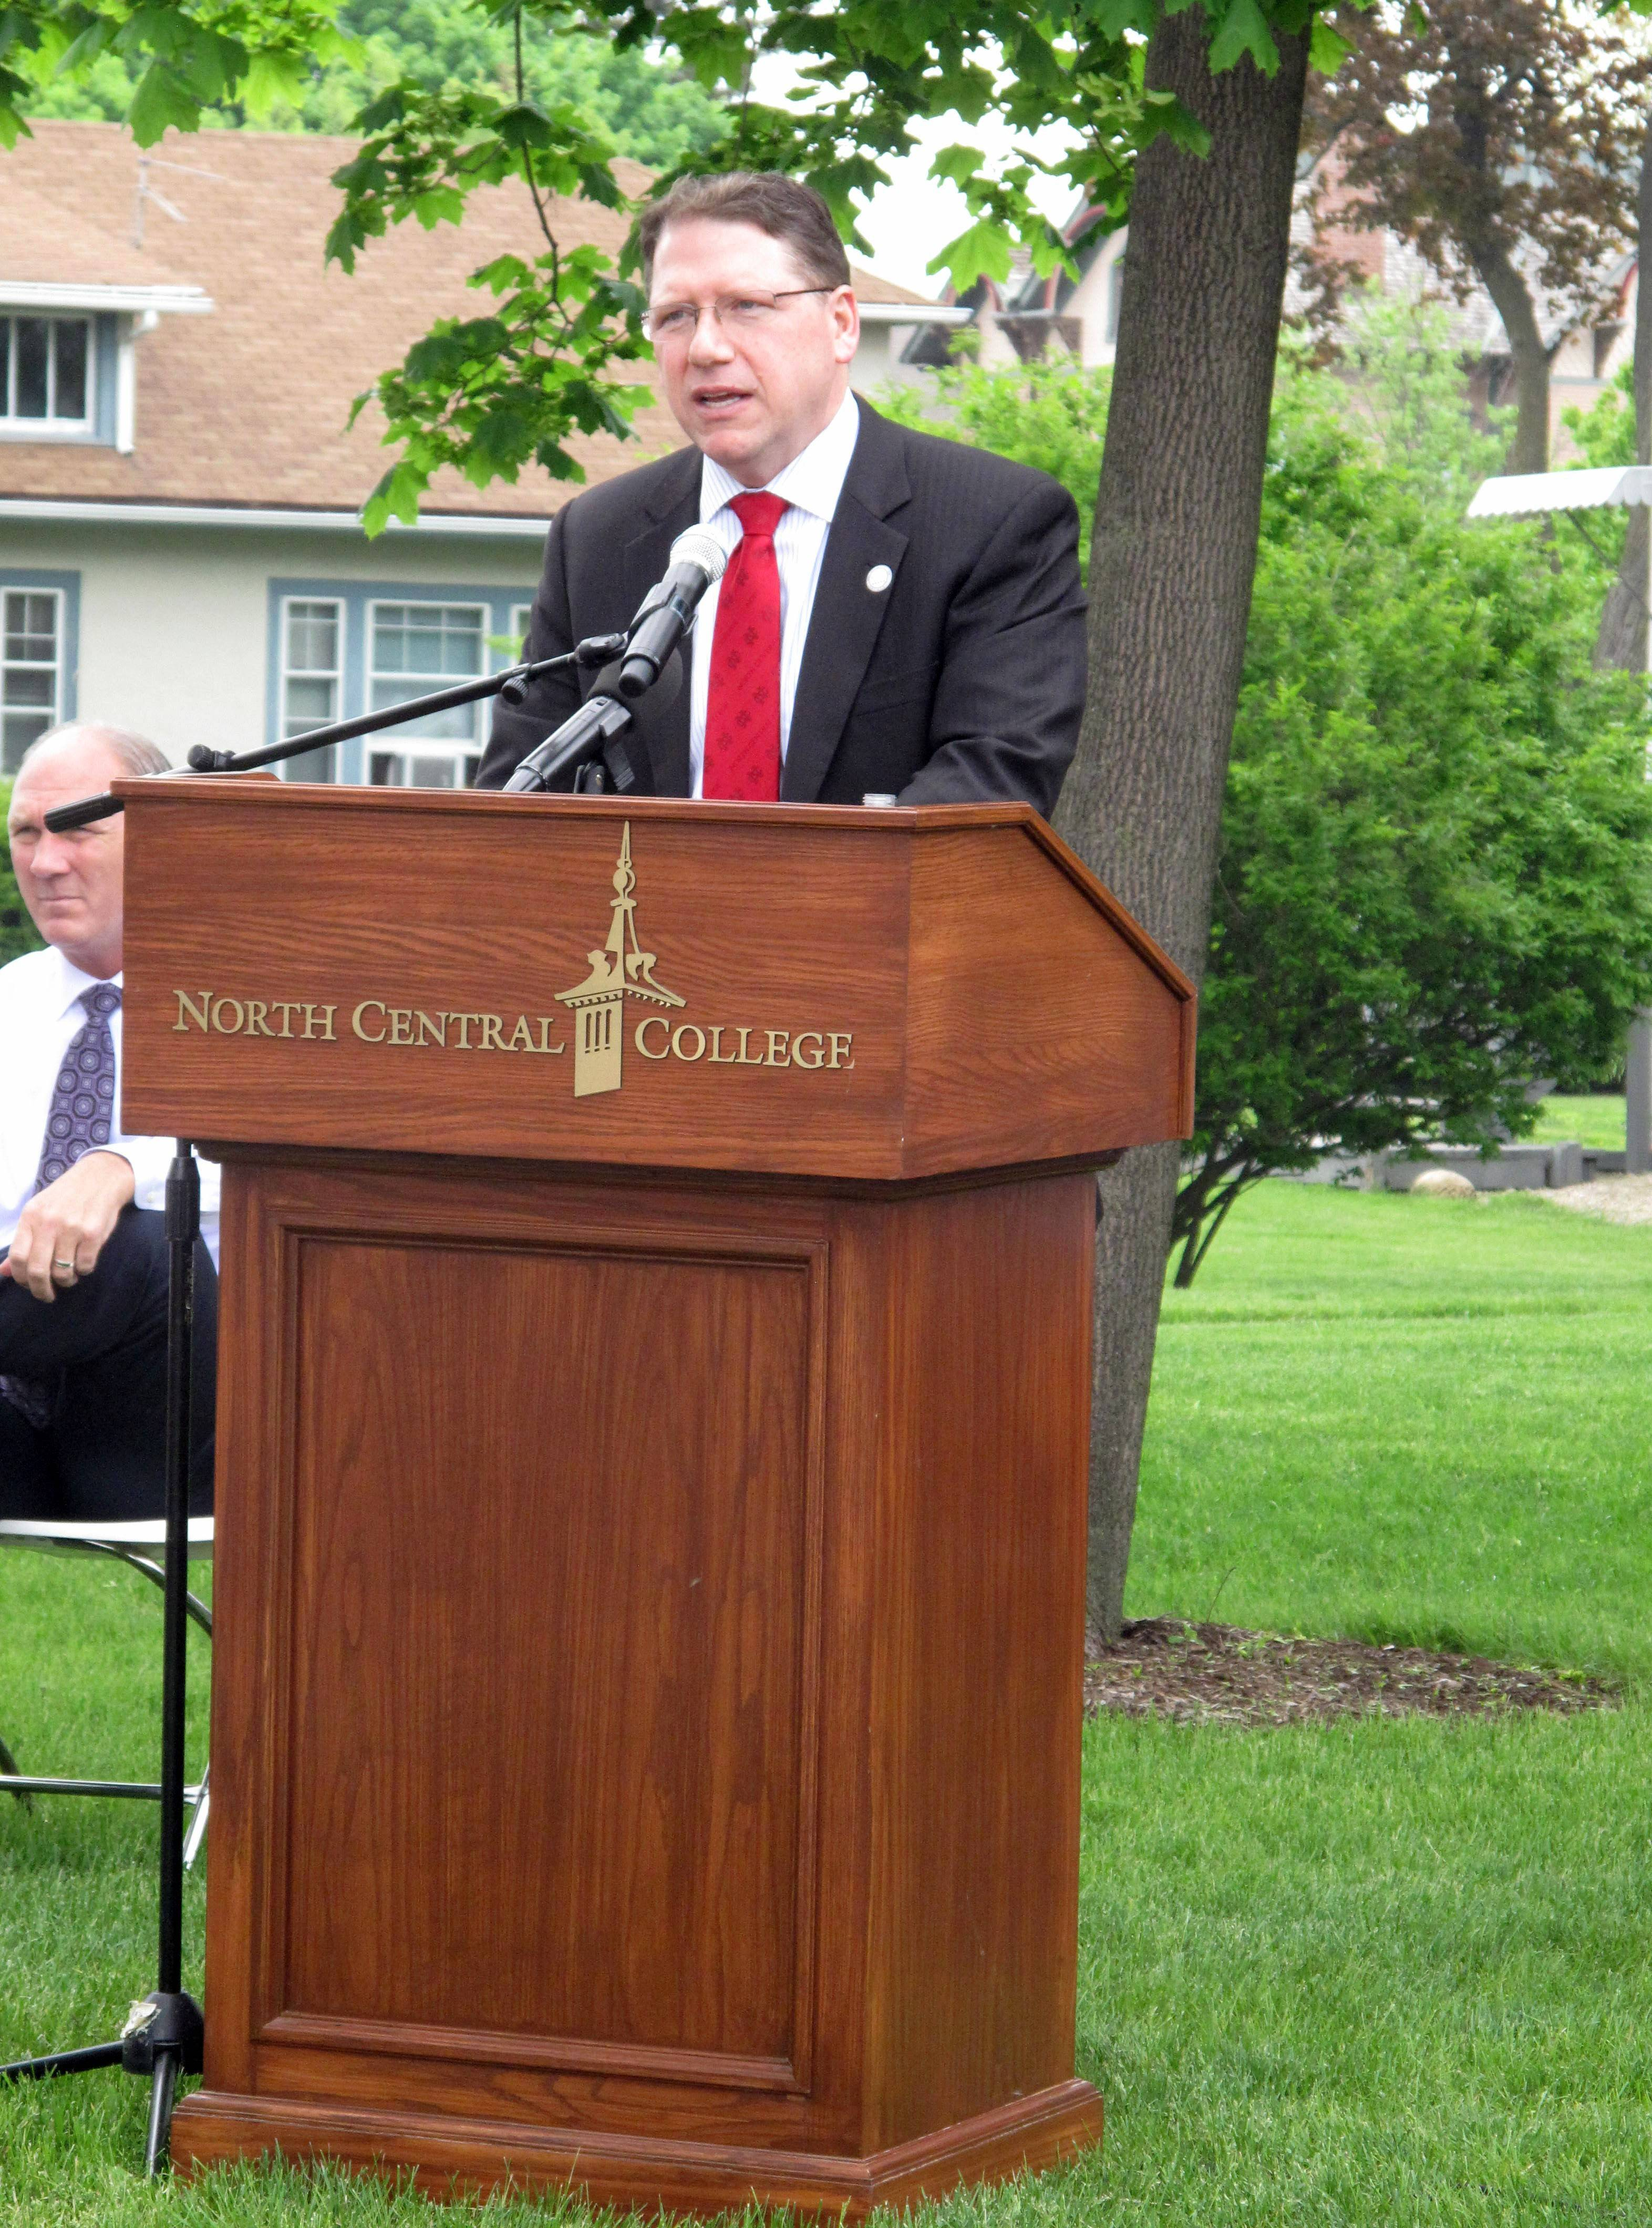 North Central College President Troy Hammond says a new science center was a top priority when he joined the college more than two years ago. On Friday, he spoke at a groundbreaking ceremony for the new building, for which the college is raising $60 million.